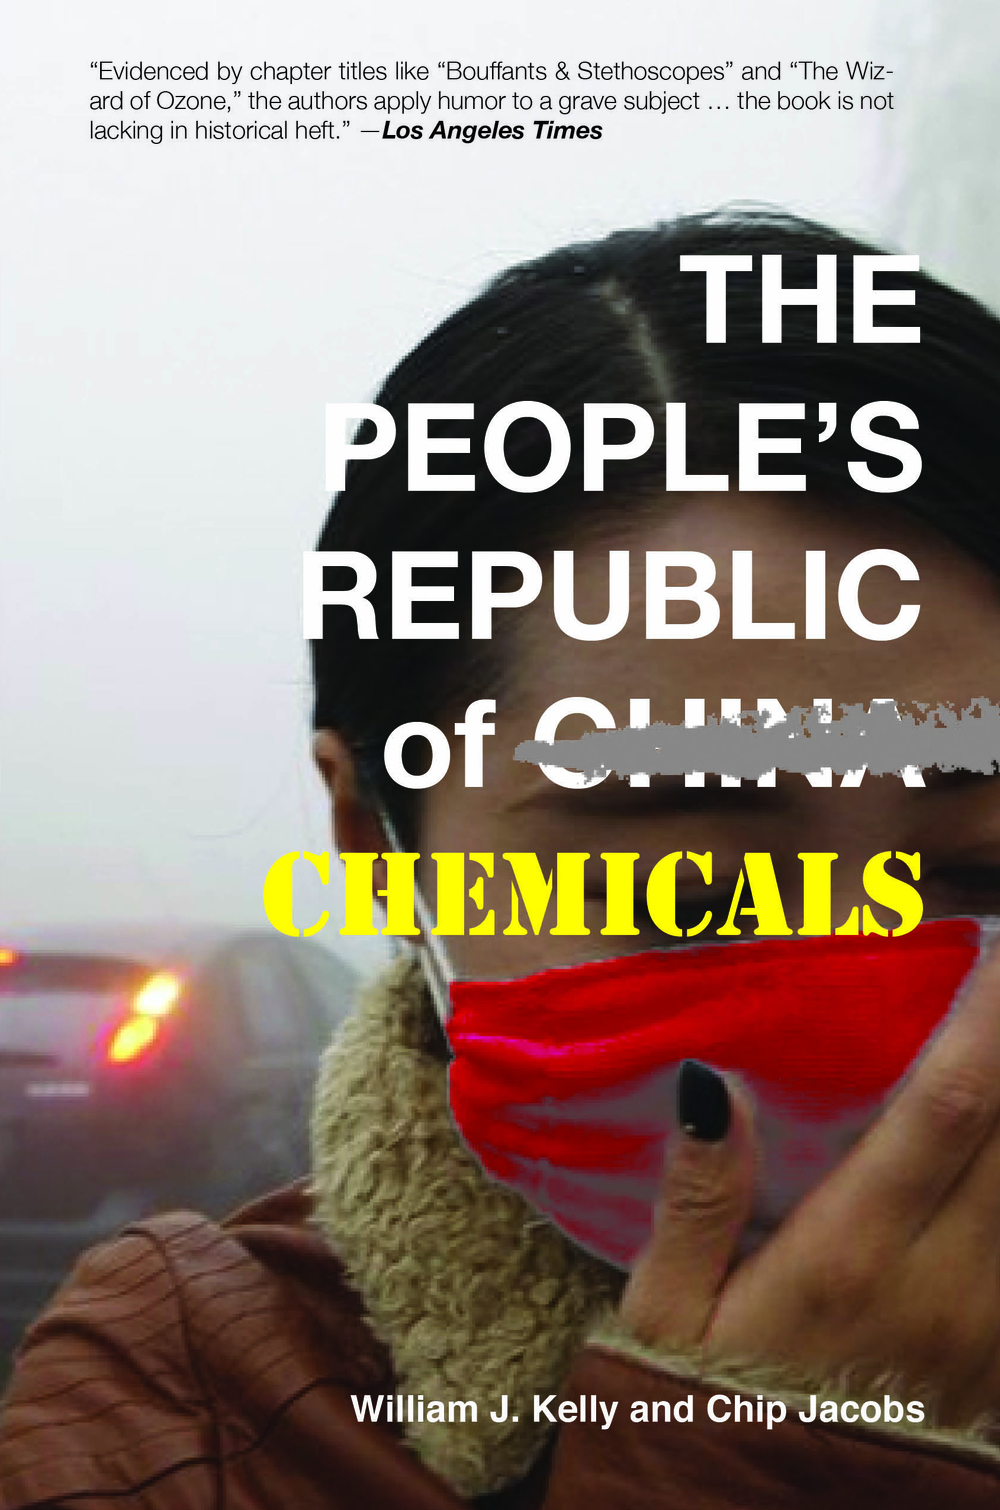 The People's Republic of Chemicals by Chip Jacobs and William J. Kelly